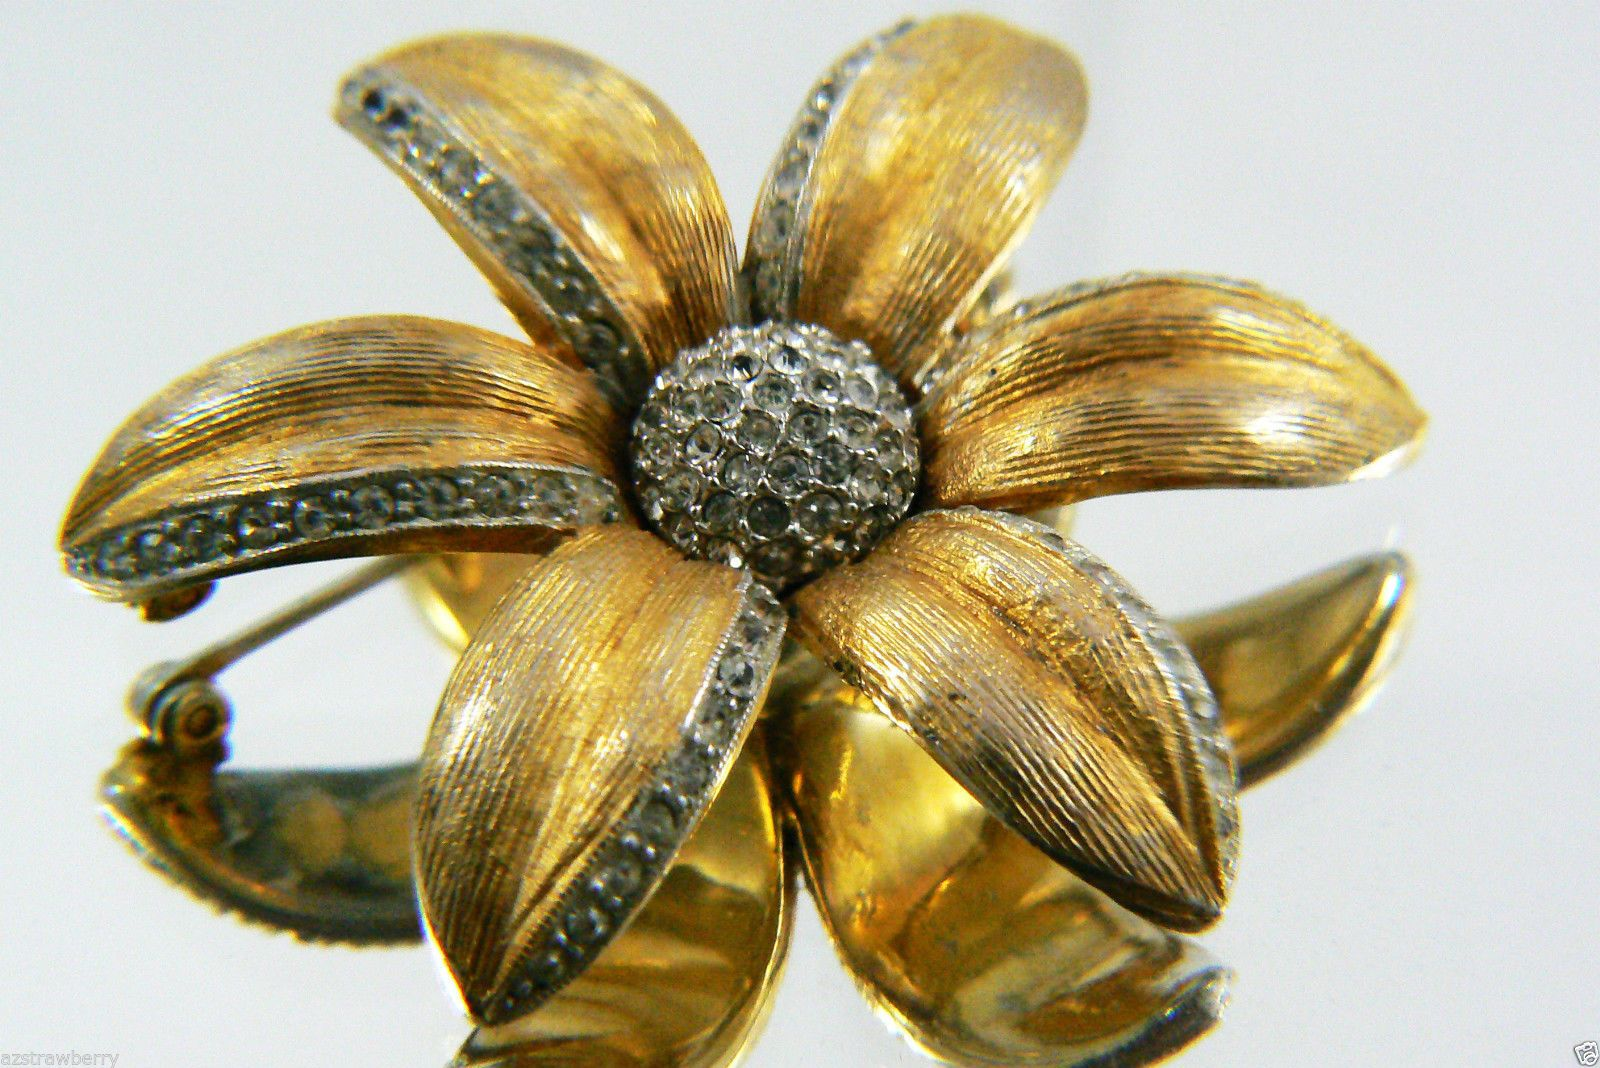 Vintage Collectible Gold Tone metal Crystal Flower Pin Brooch $0 sh - Pins & Brooches